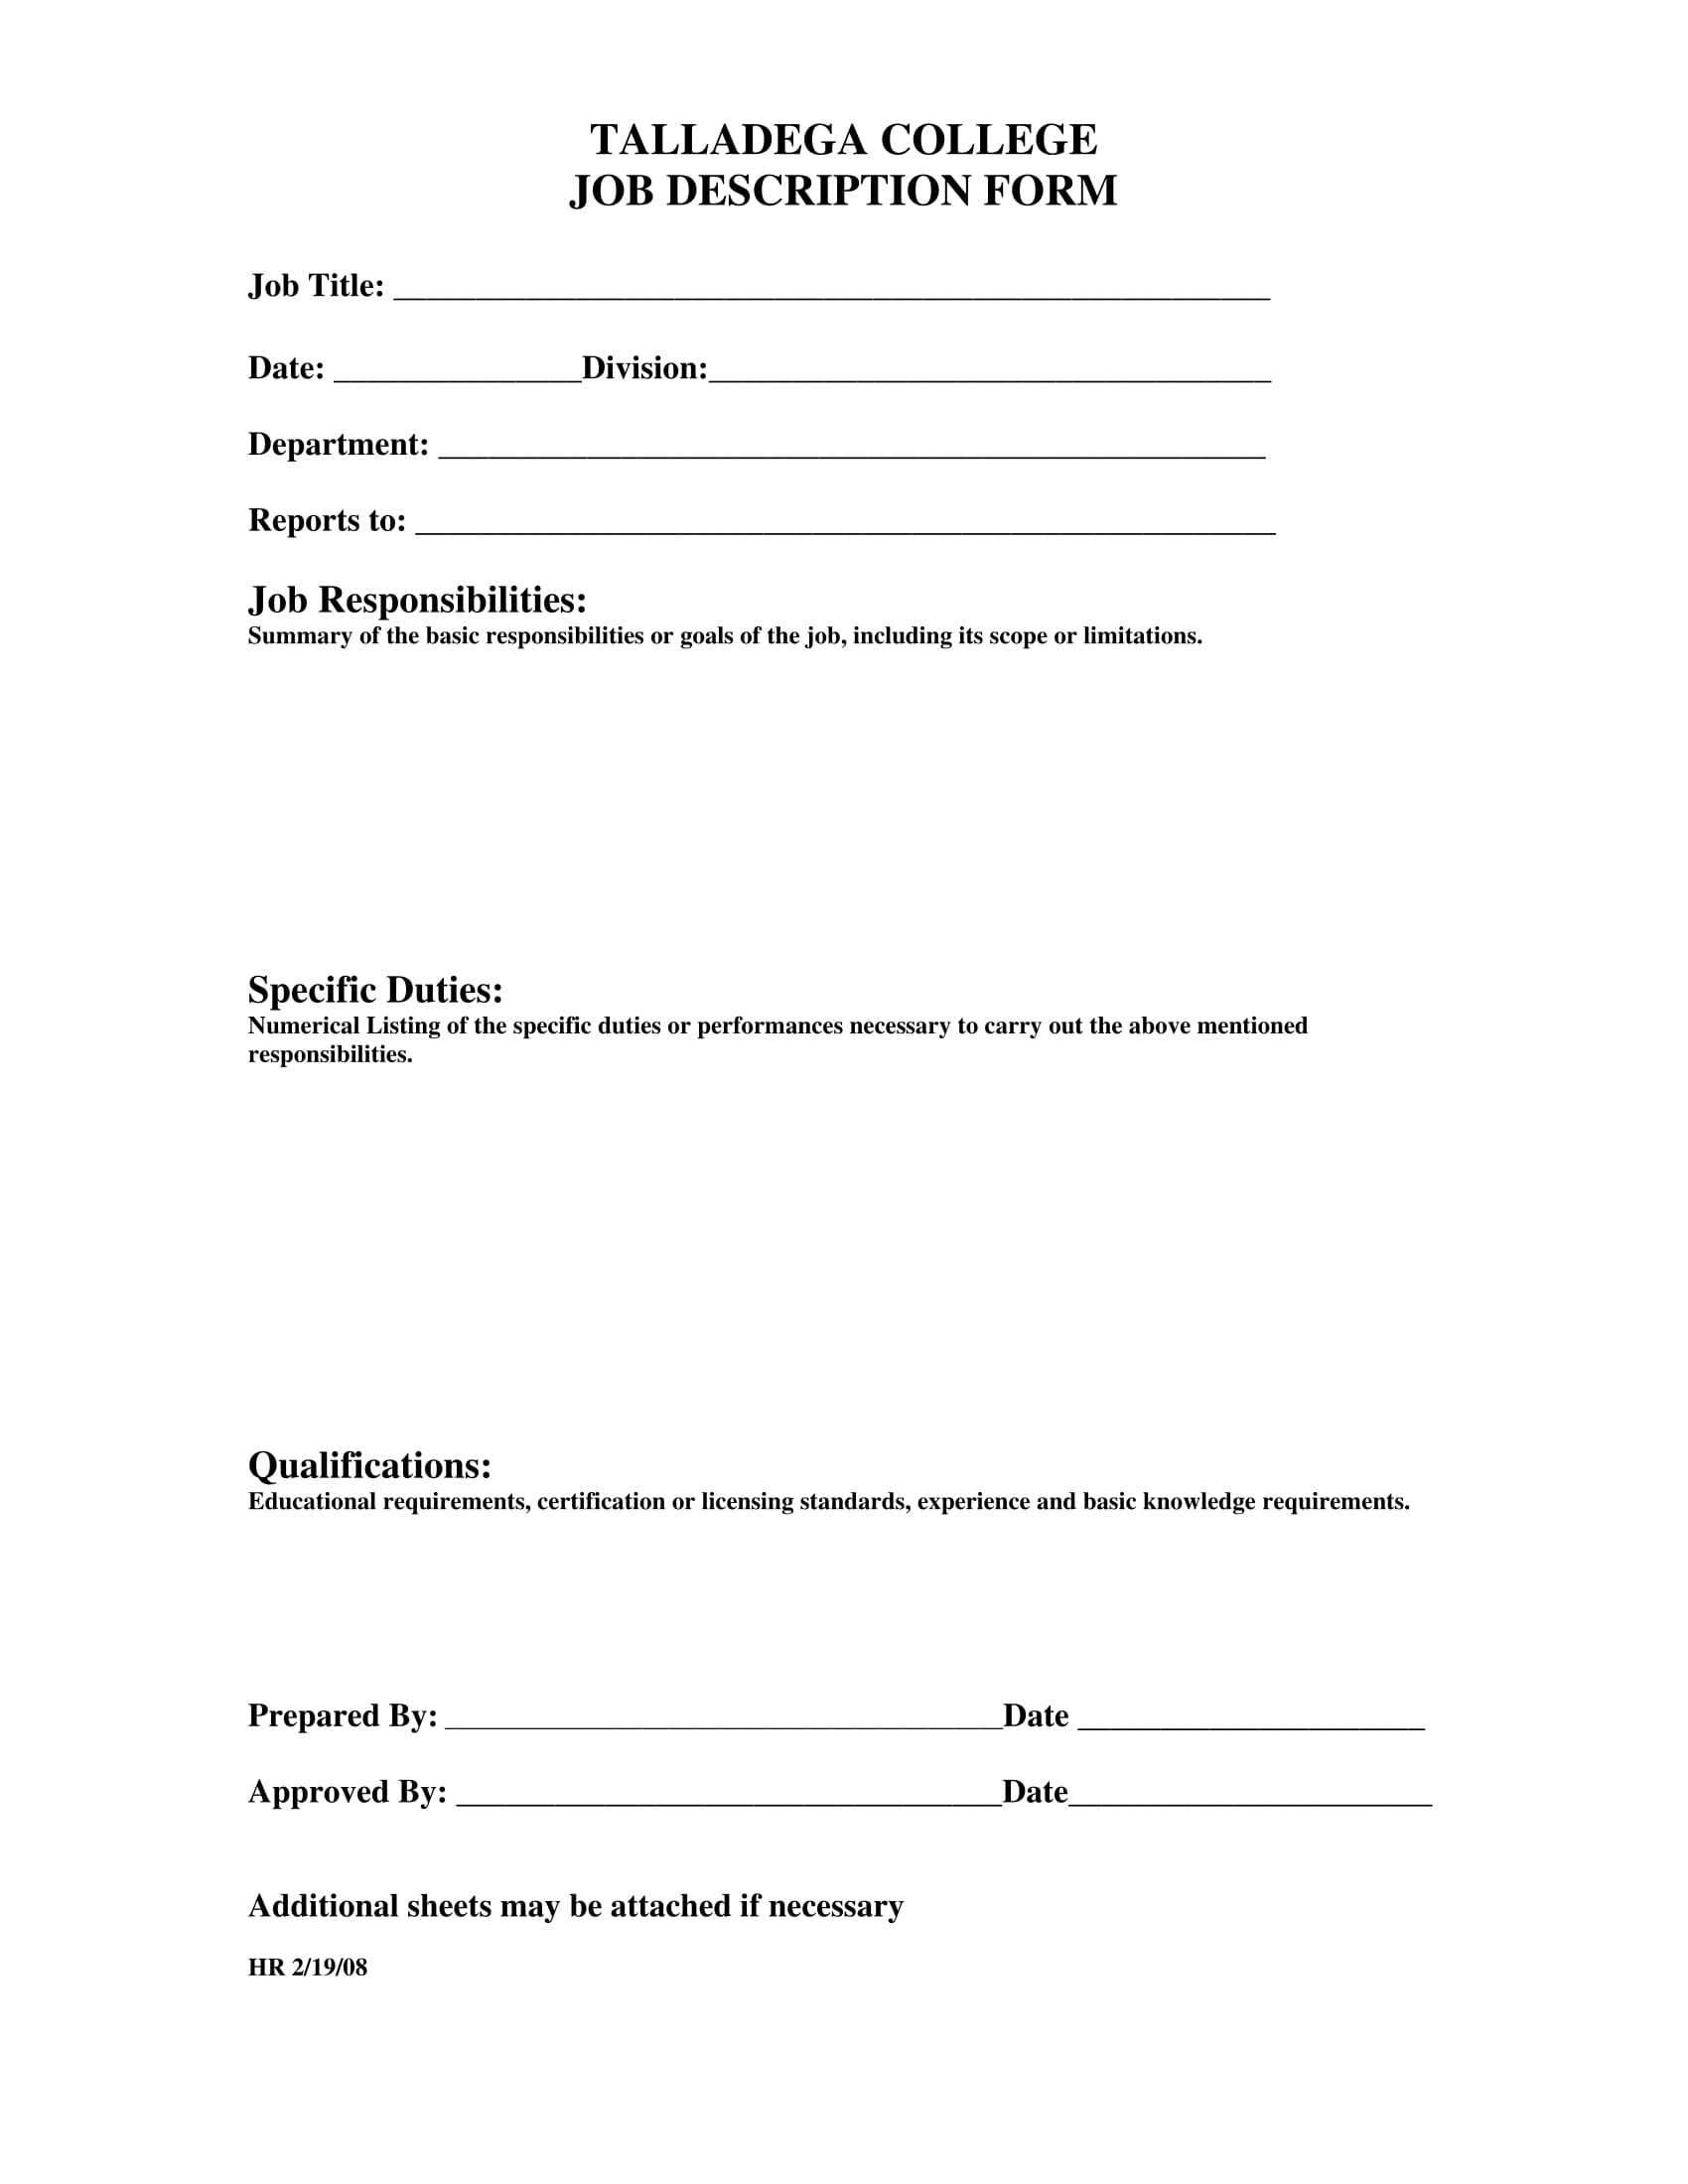 college job description form 1